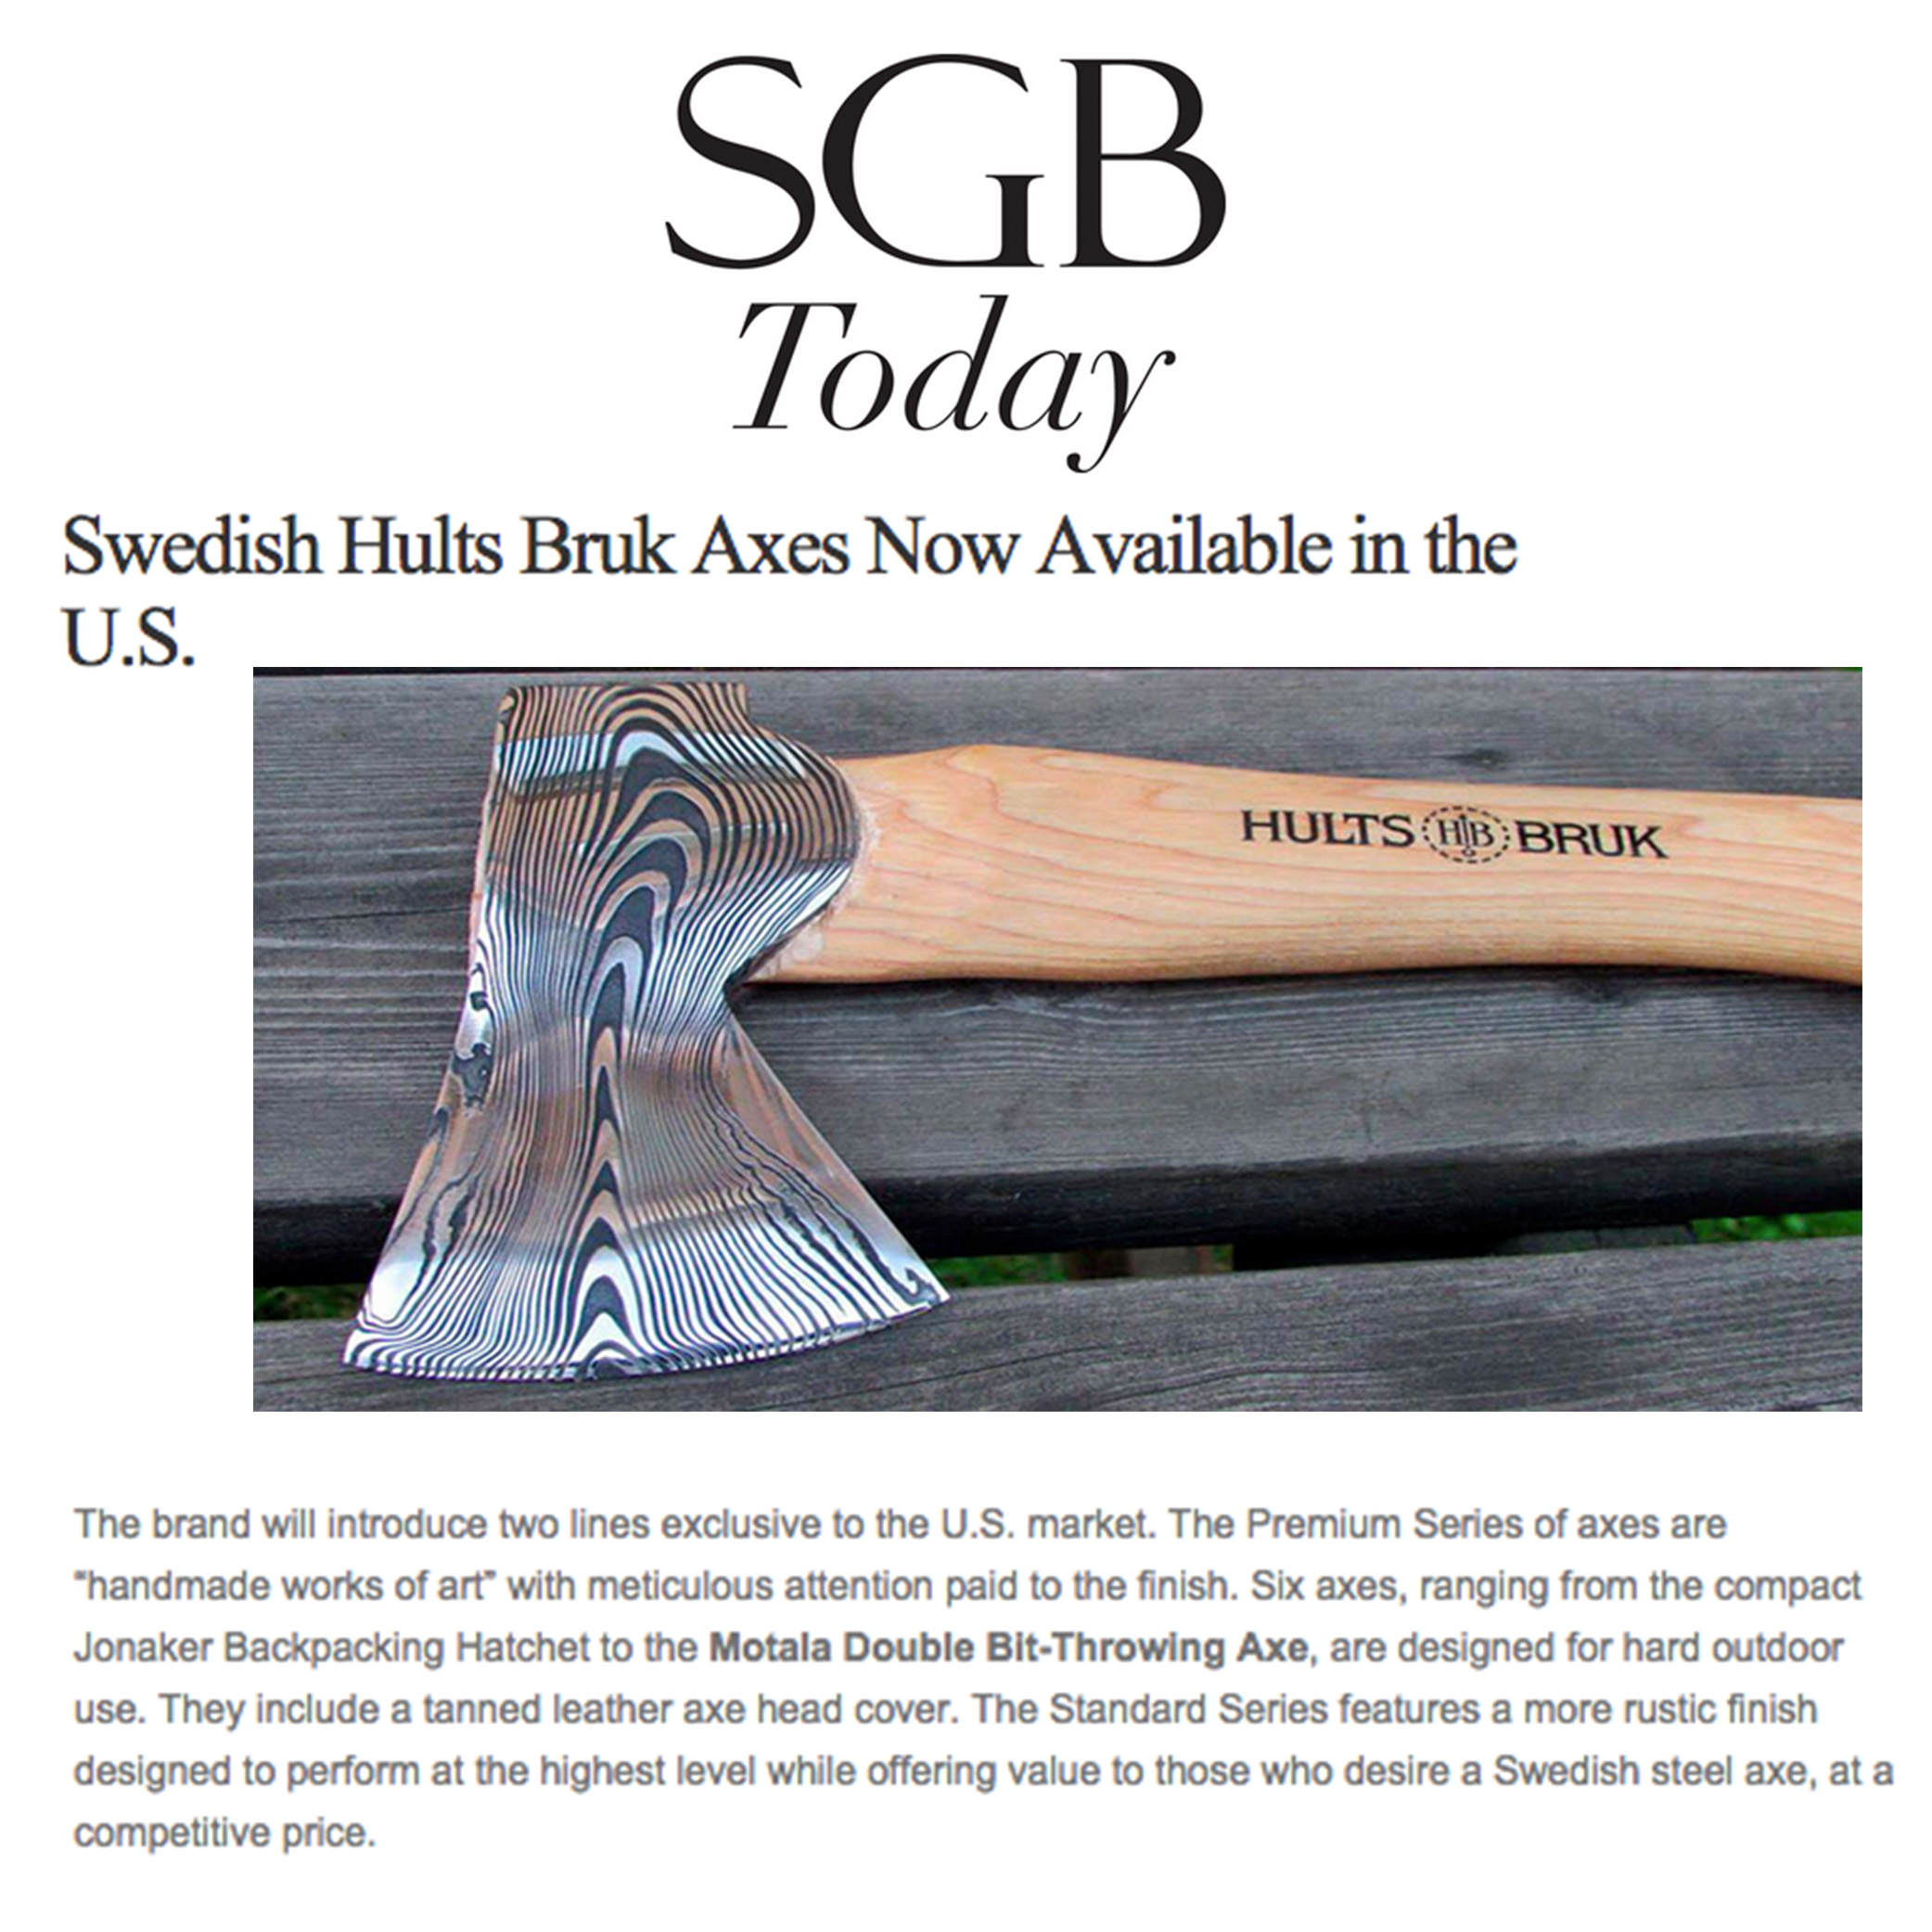 SGB Gears Up for U.S. Release of Hults Bruk Axes